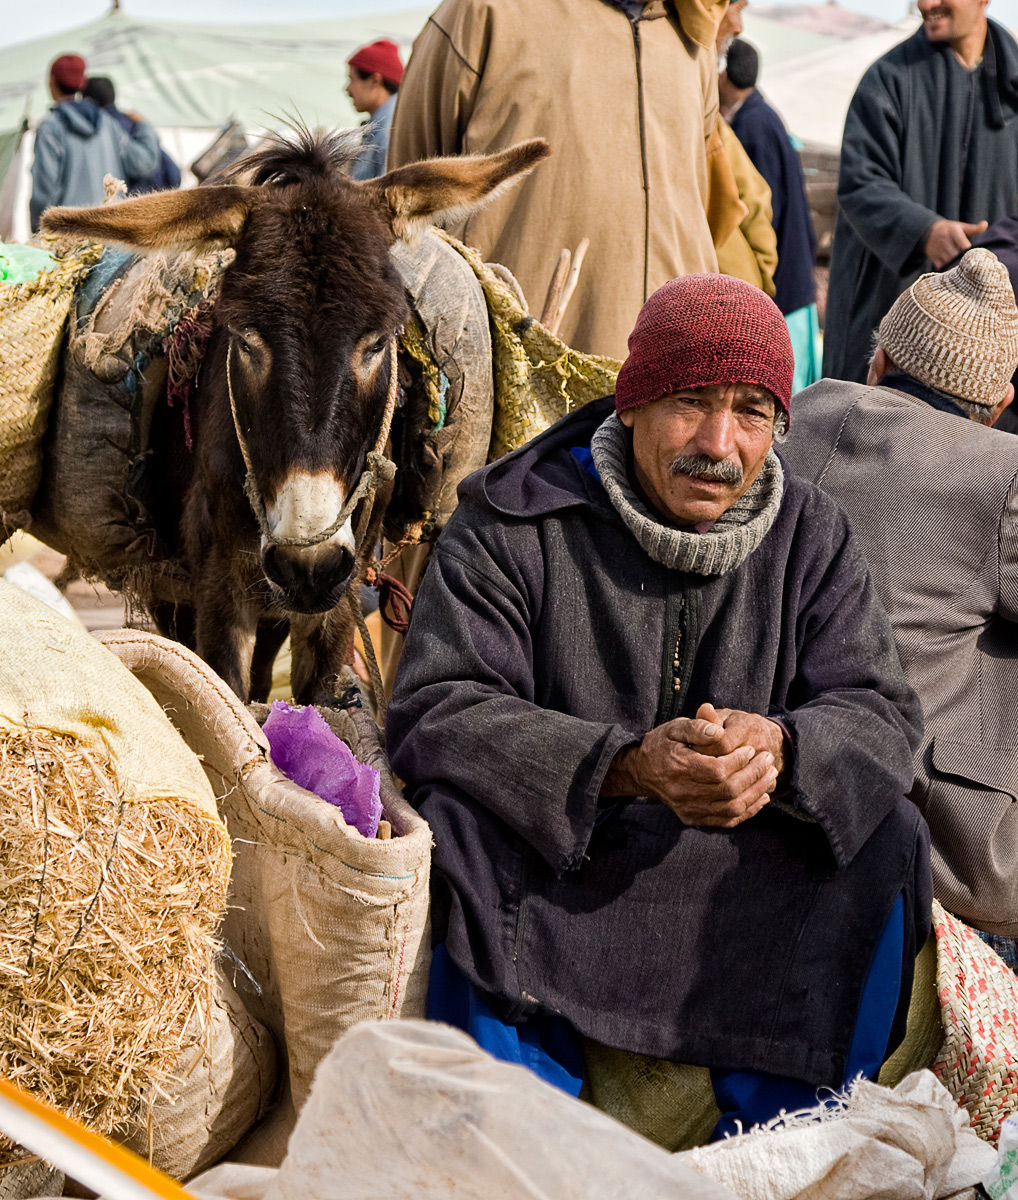 Moroccan Street Merchant and Donkey